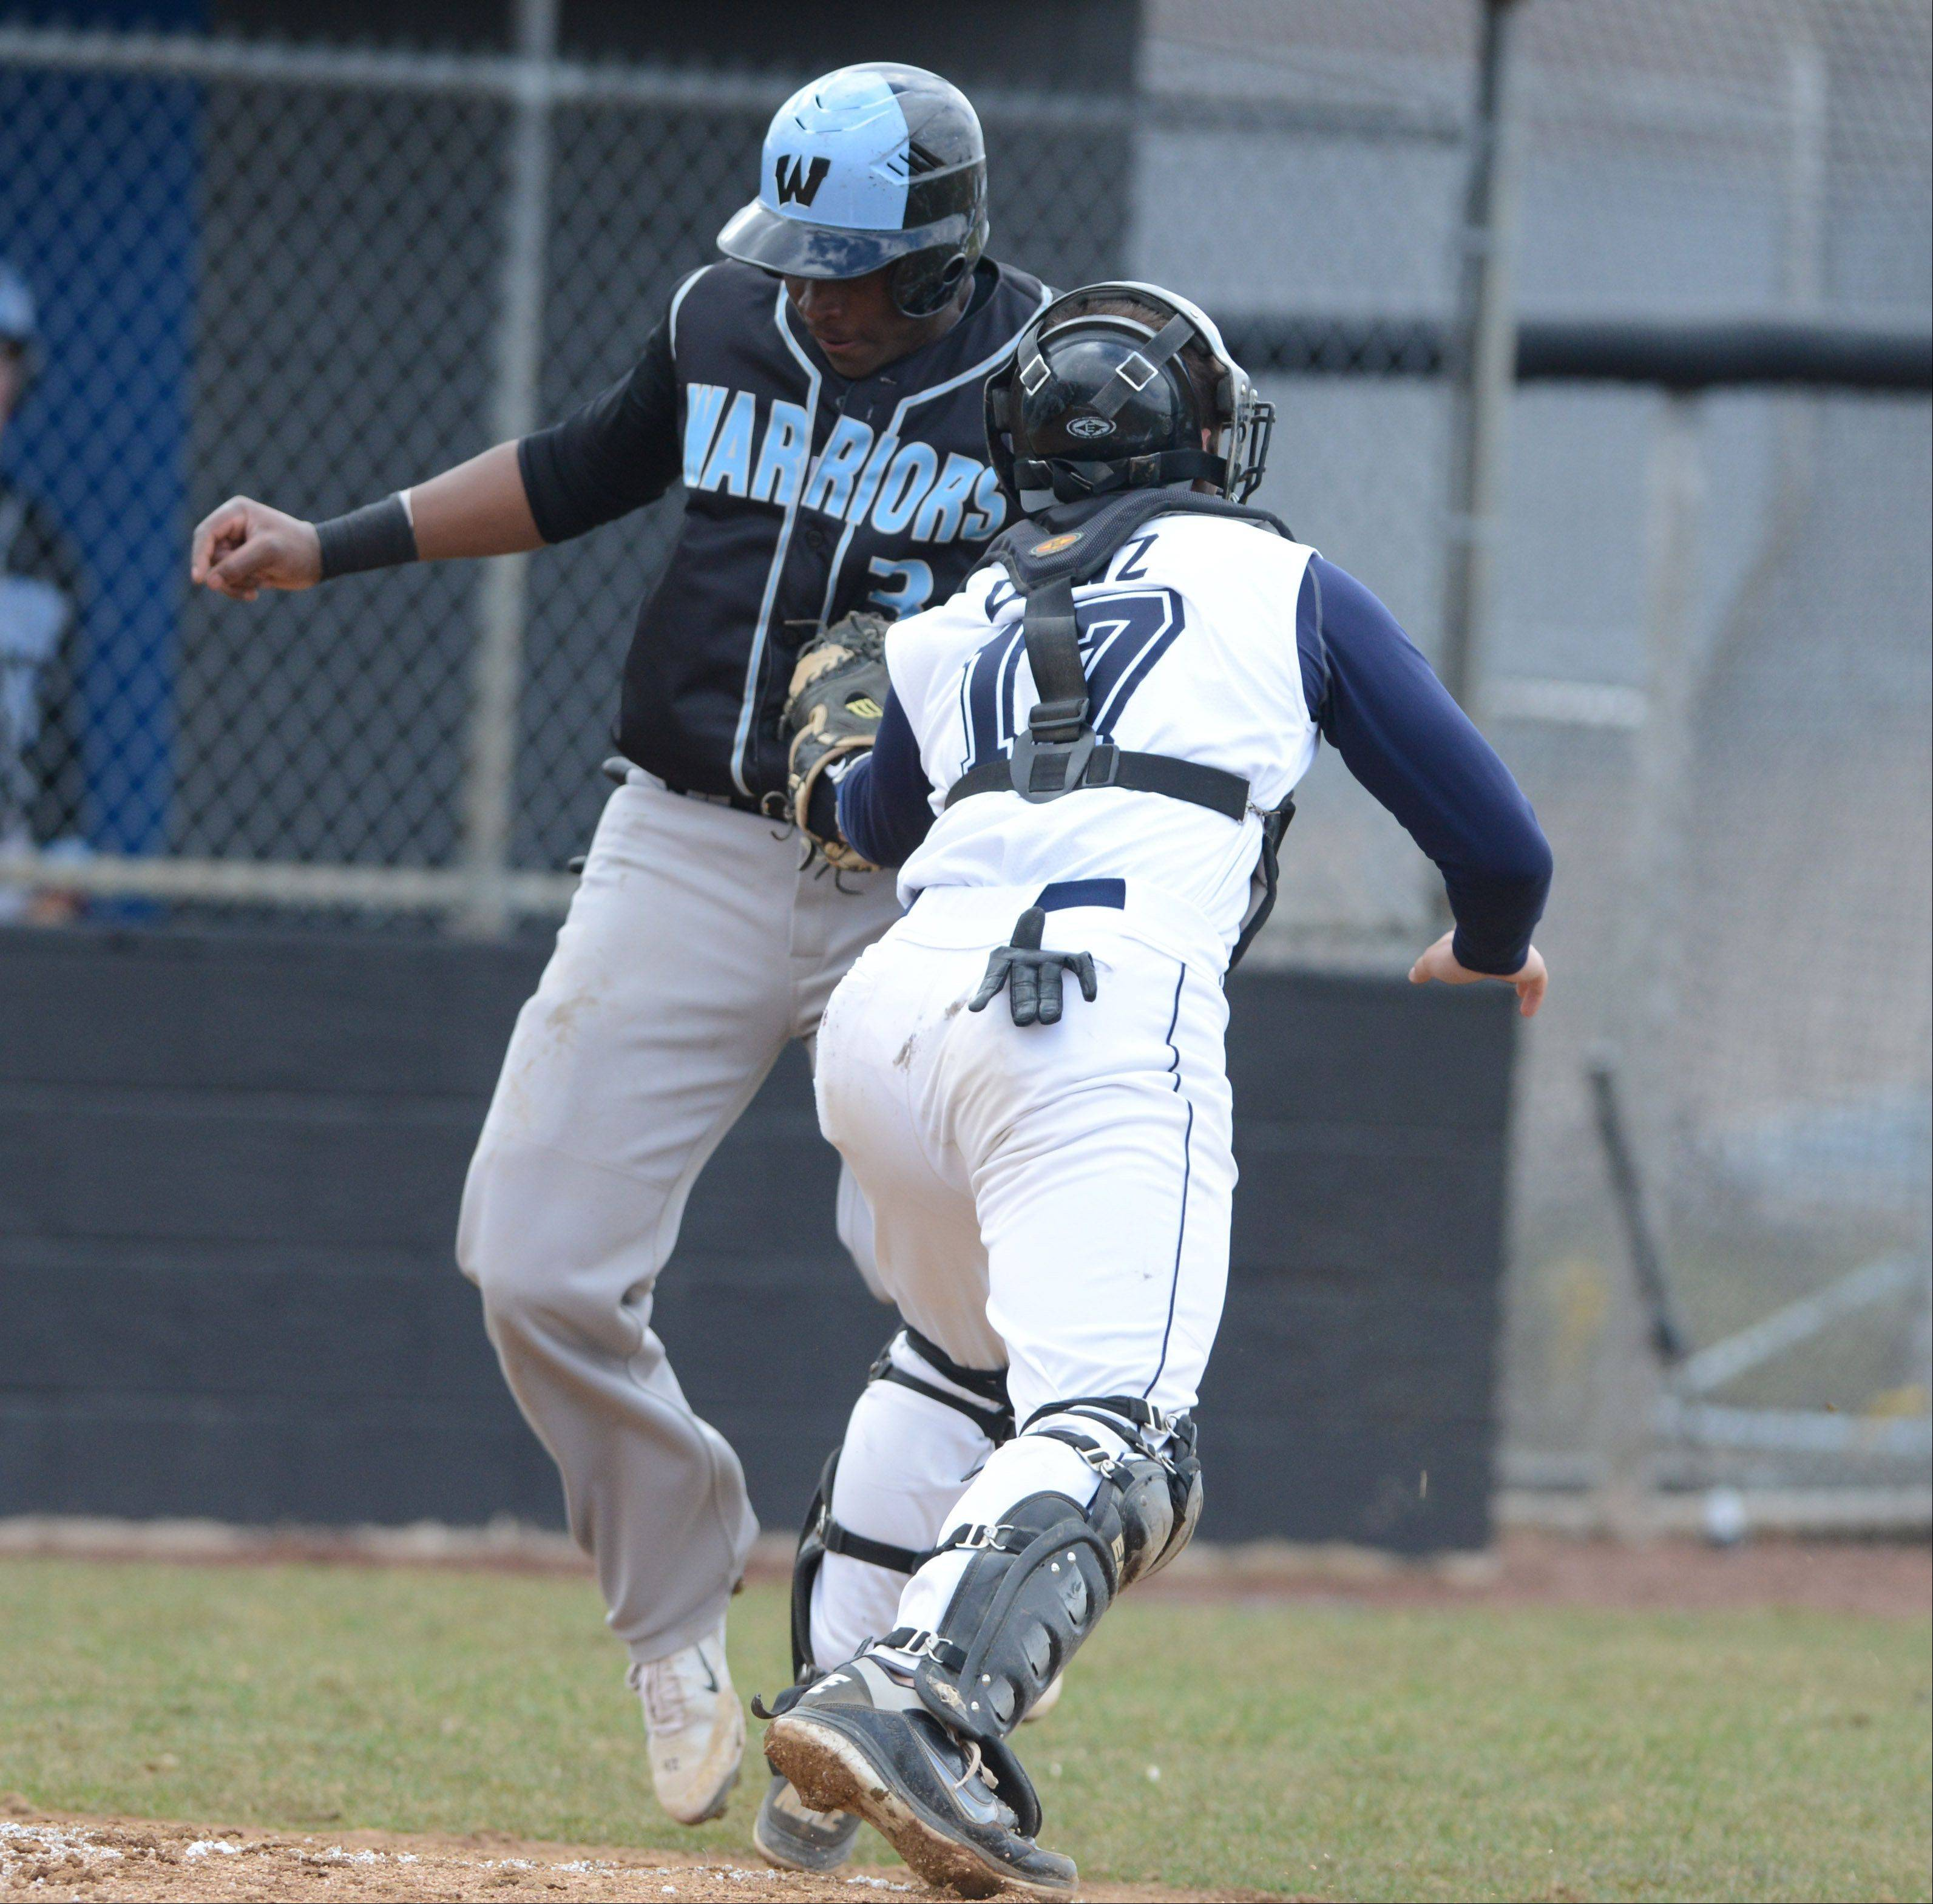 Gabe Gage of Willowbrook is tagged out by Zack Dowz of Addison Trail at home plate on Saturday in Addison.